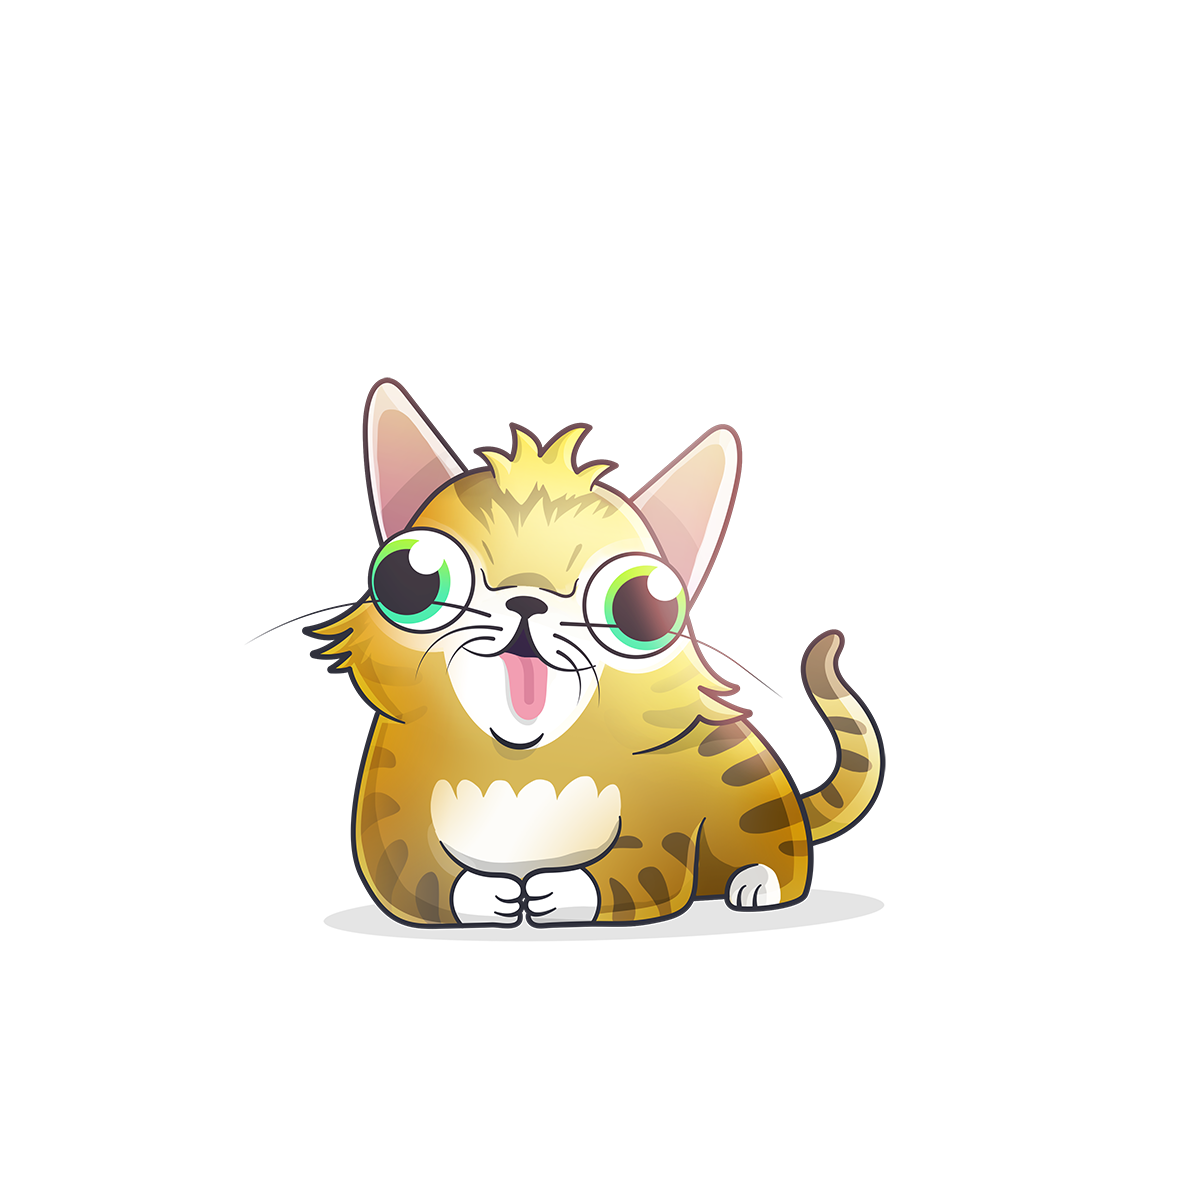 cryptokitty #1137624